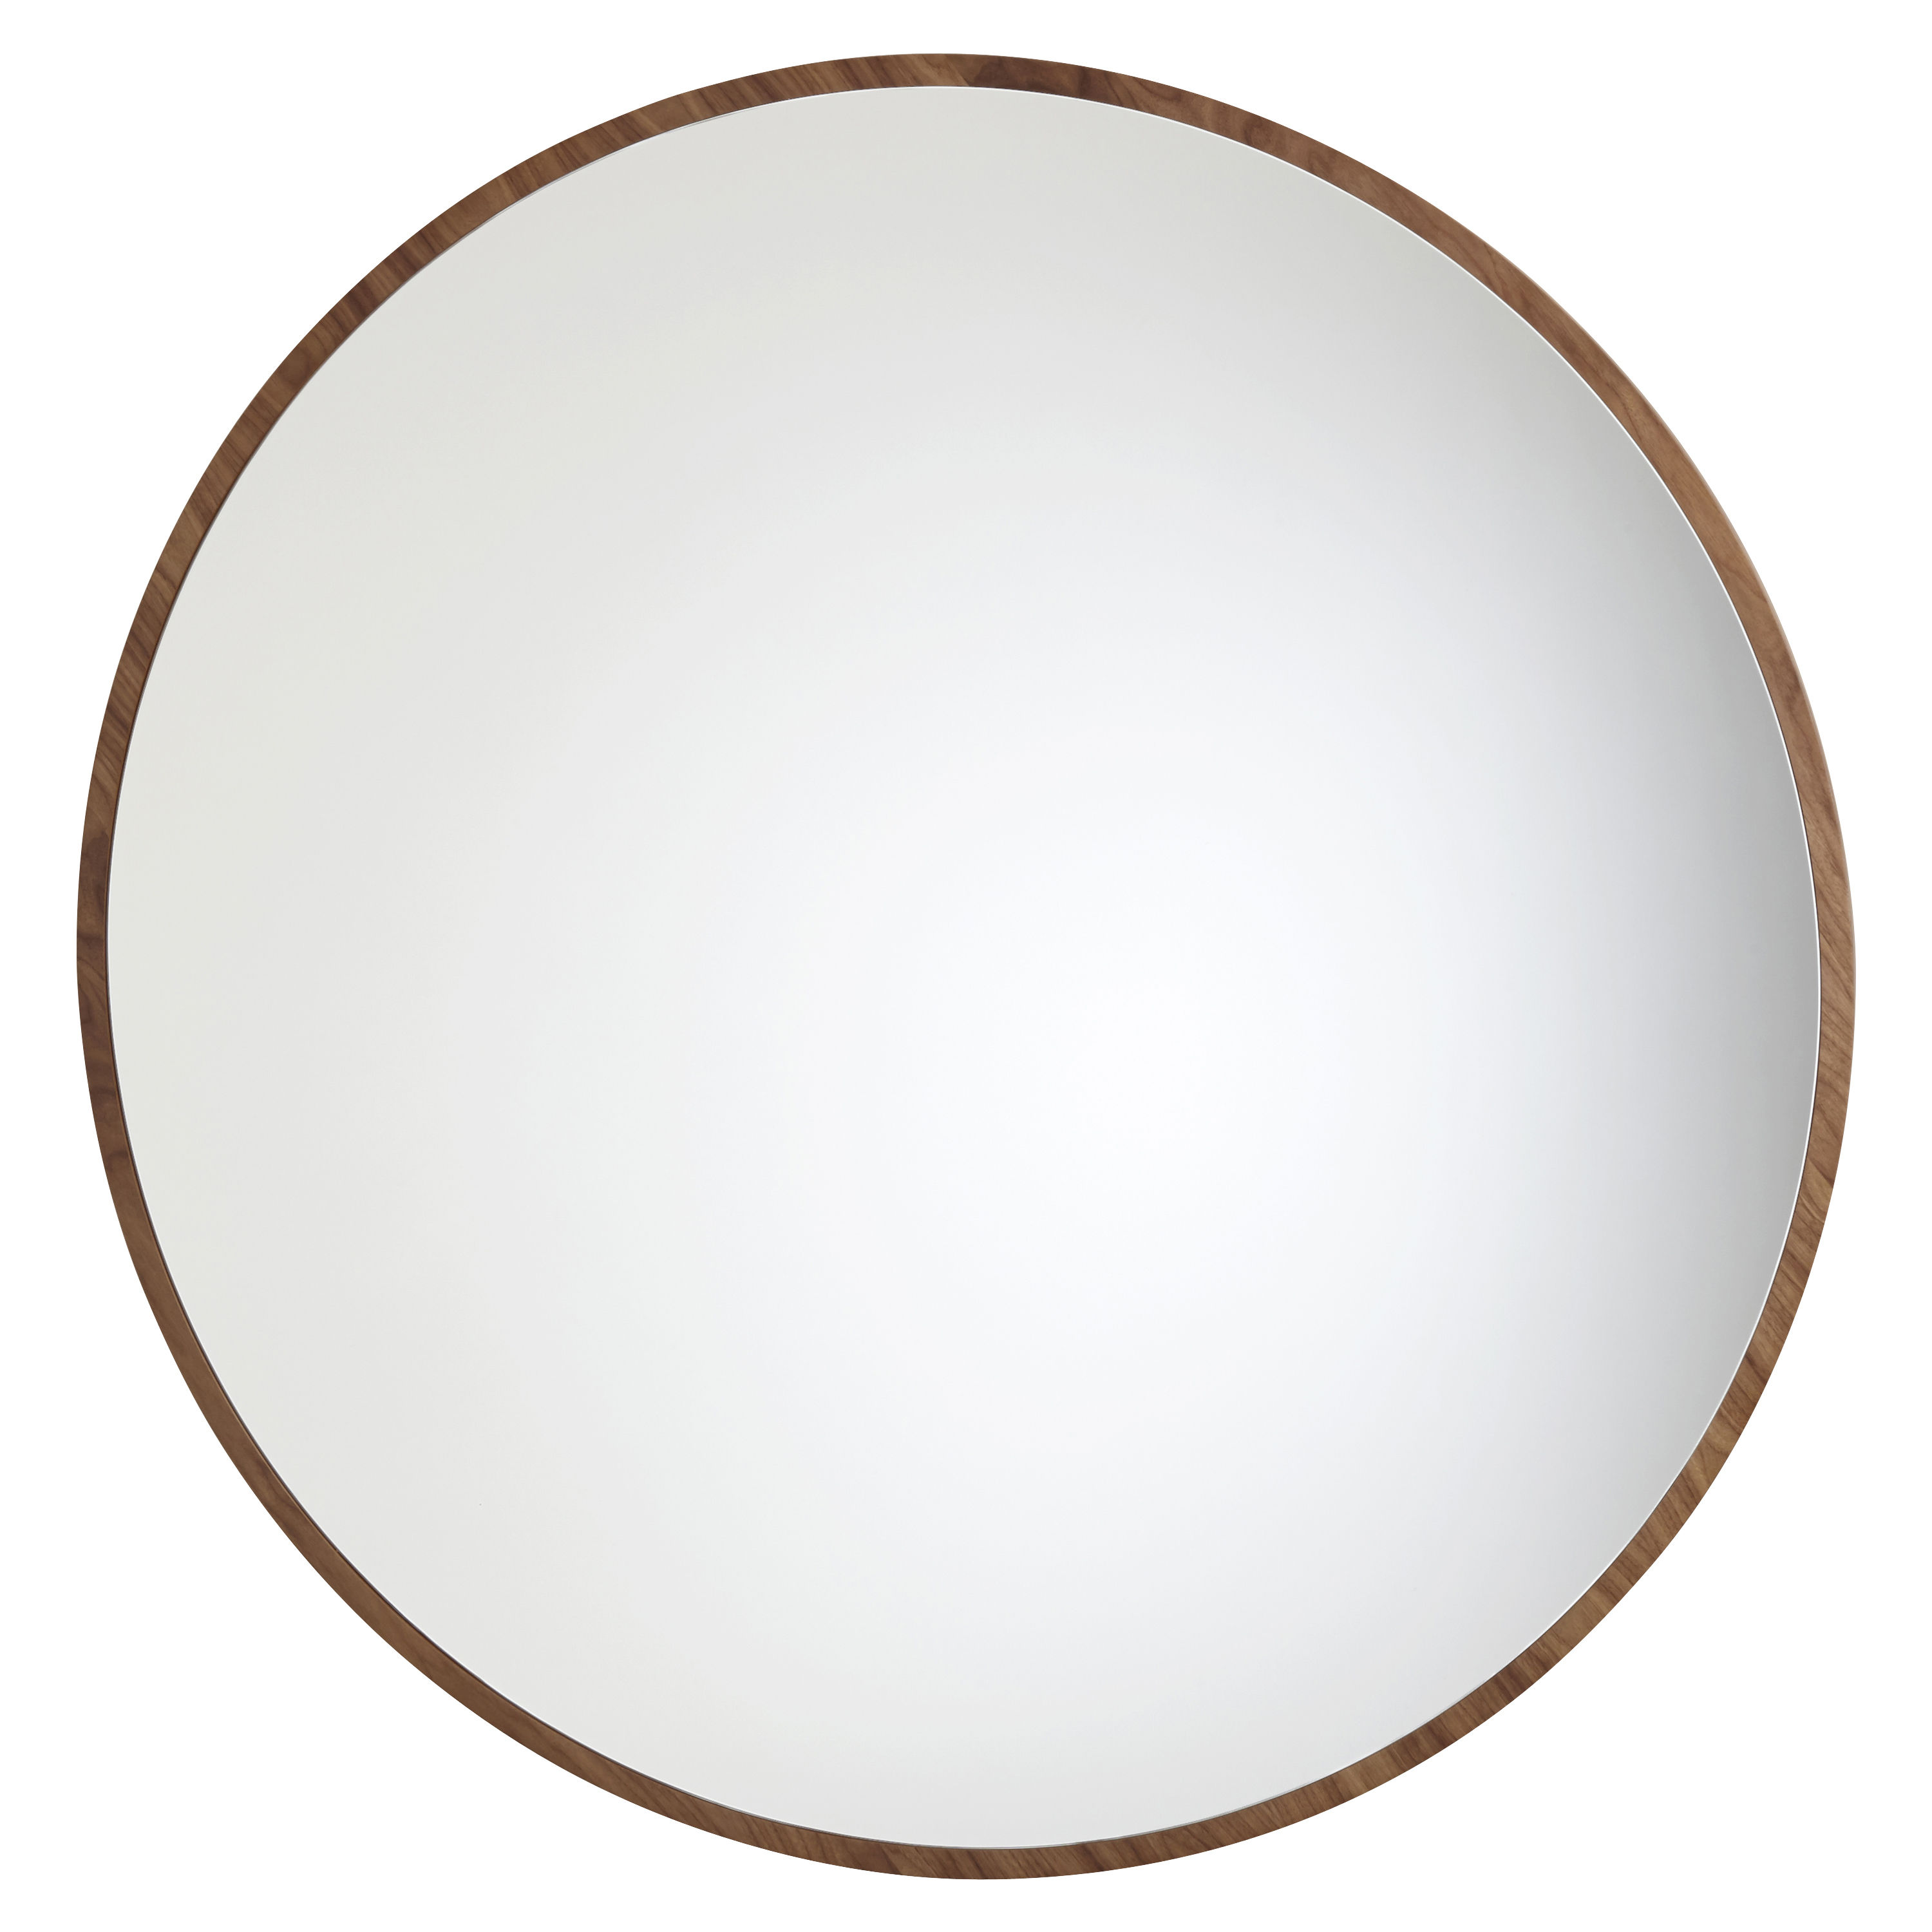 Bulle wall mirror large 120 cm oiled walnut by for Miroir collable